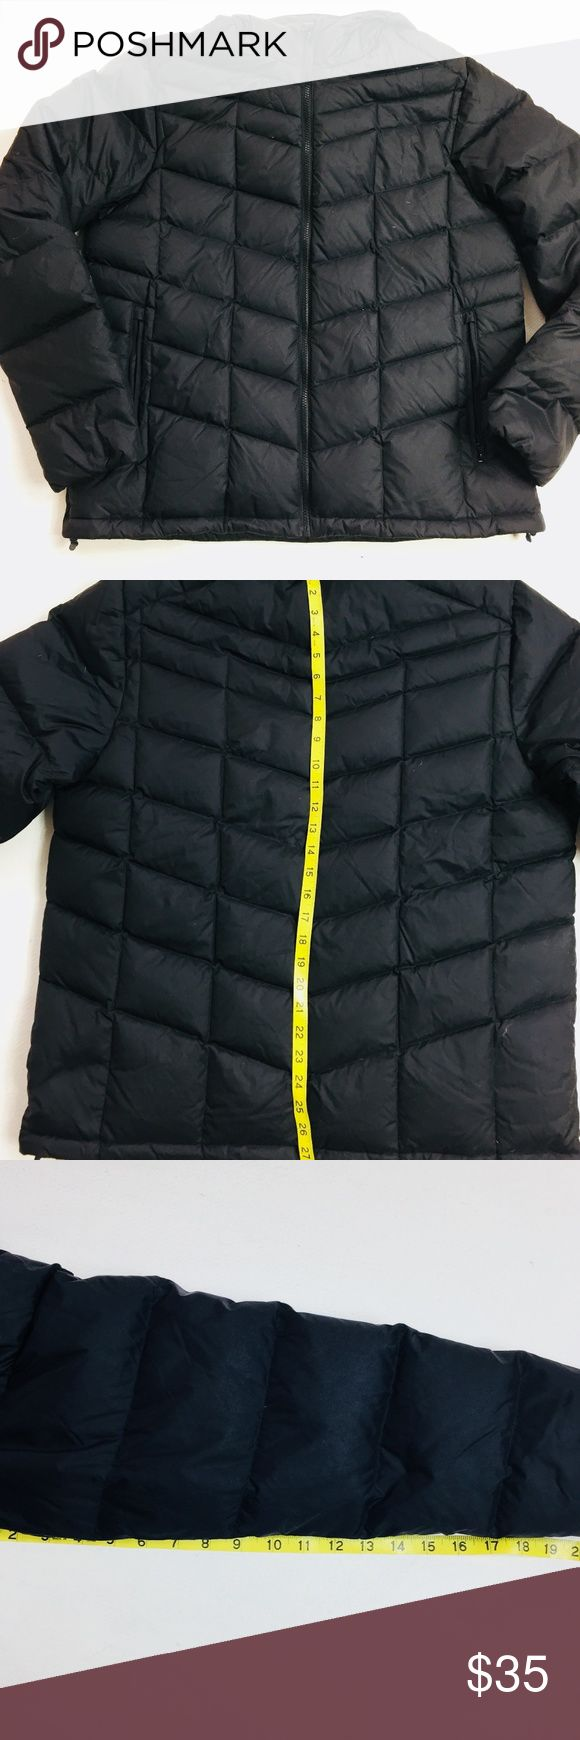 Lands End Puffer Jacket Insulated Hooded Down Lands End Puffer Jacket Mens Sz L 42-44 lightweight hooded down/feather insulated 80% down 20% feather filled,  light weight   in gently worn condition  A2512kt10 Lands End Jackets & Coats Puffers